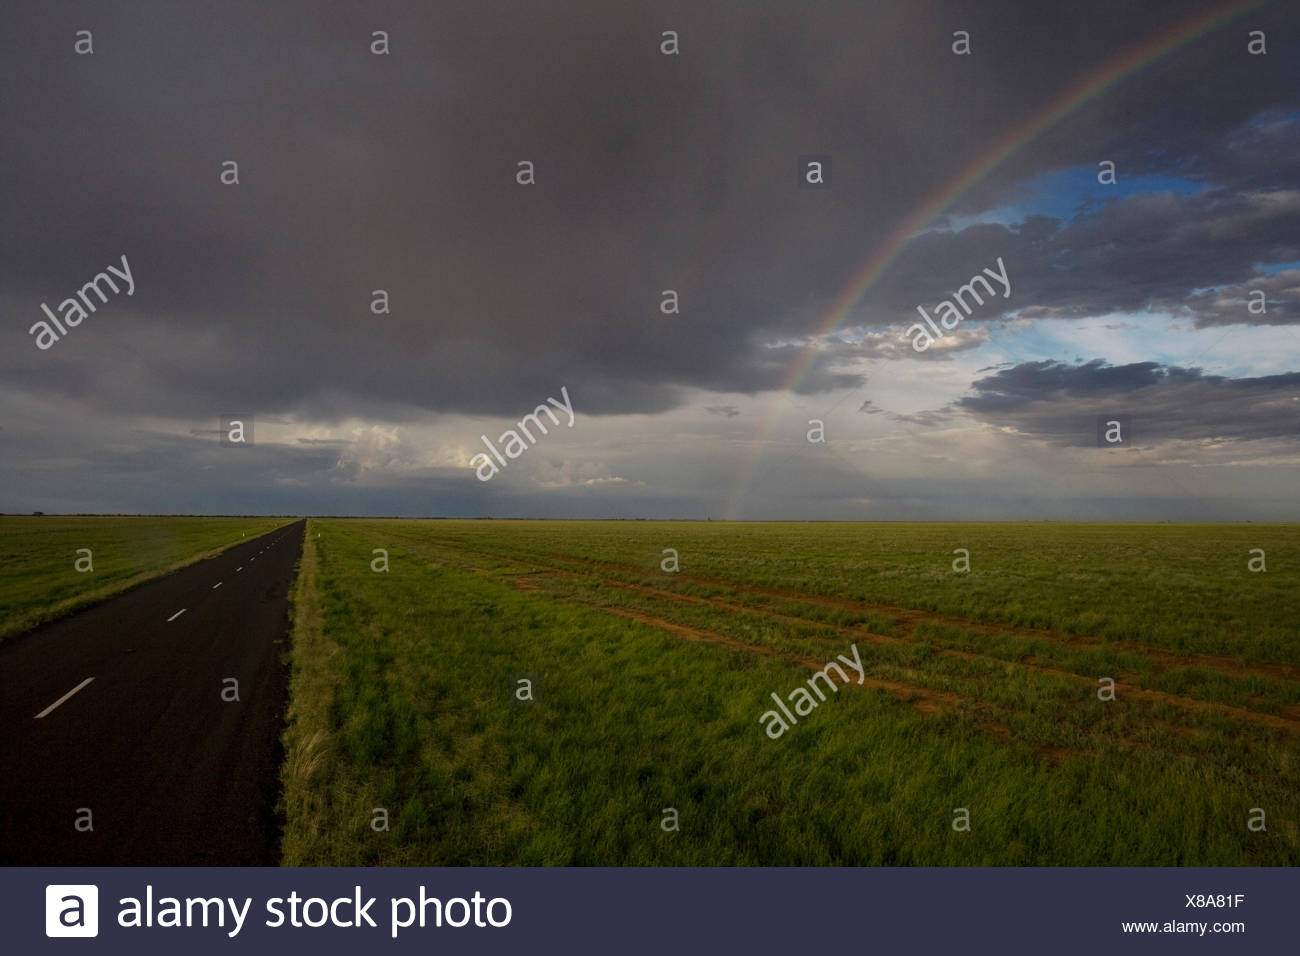 A rainbow appears after a storm. - Stock Image